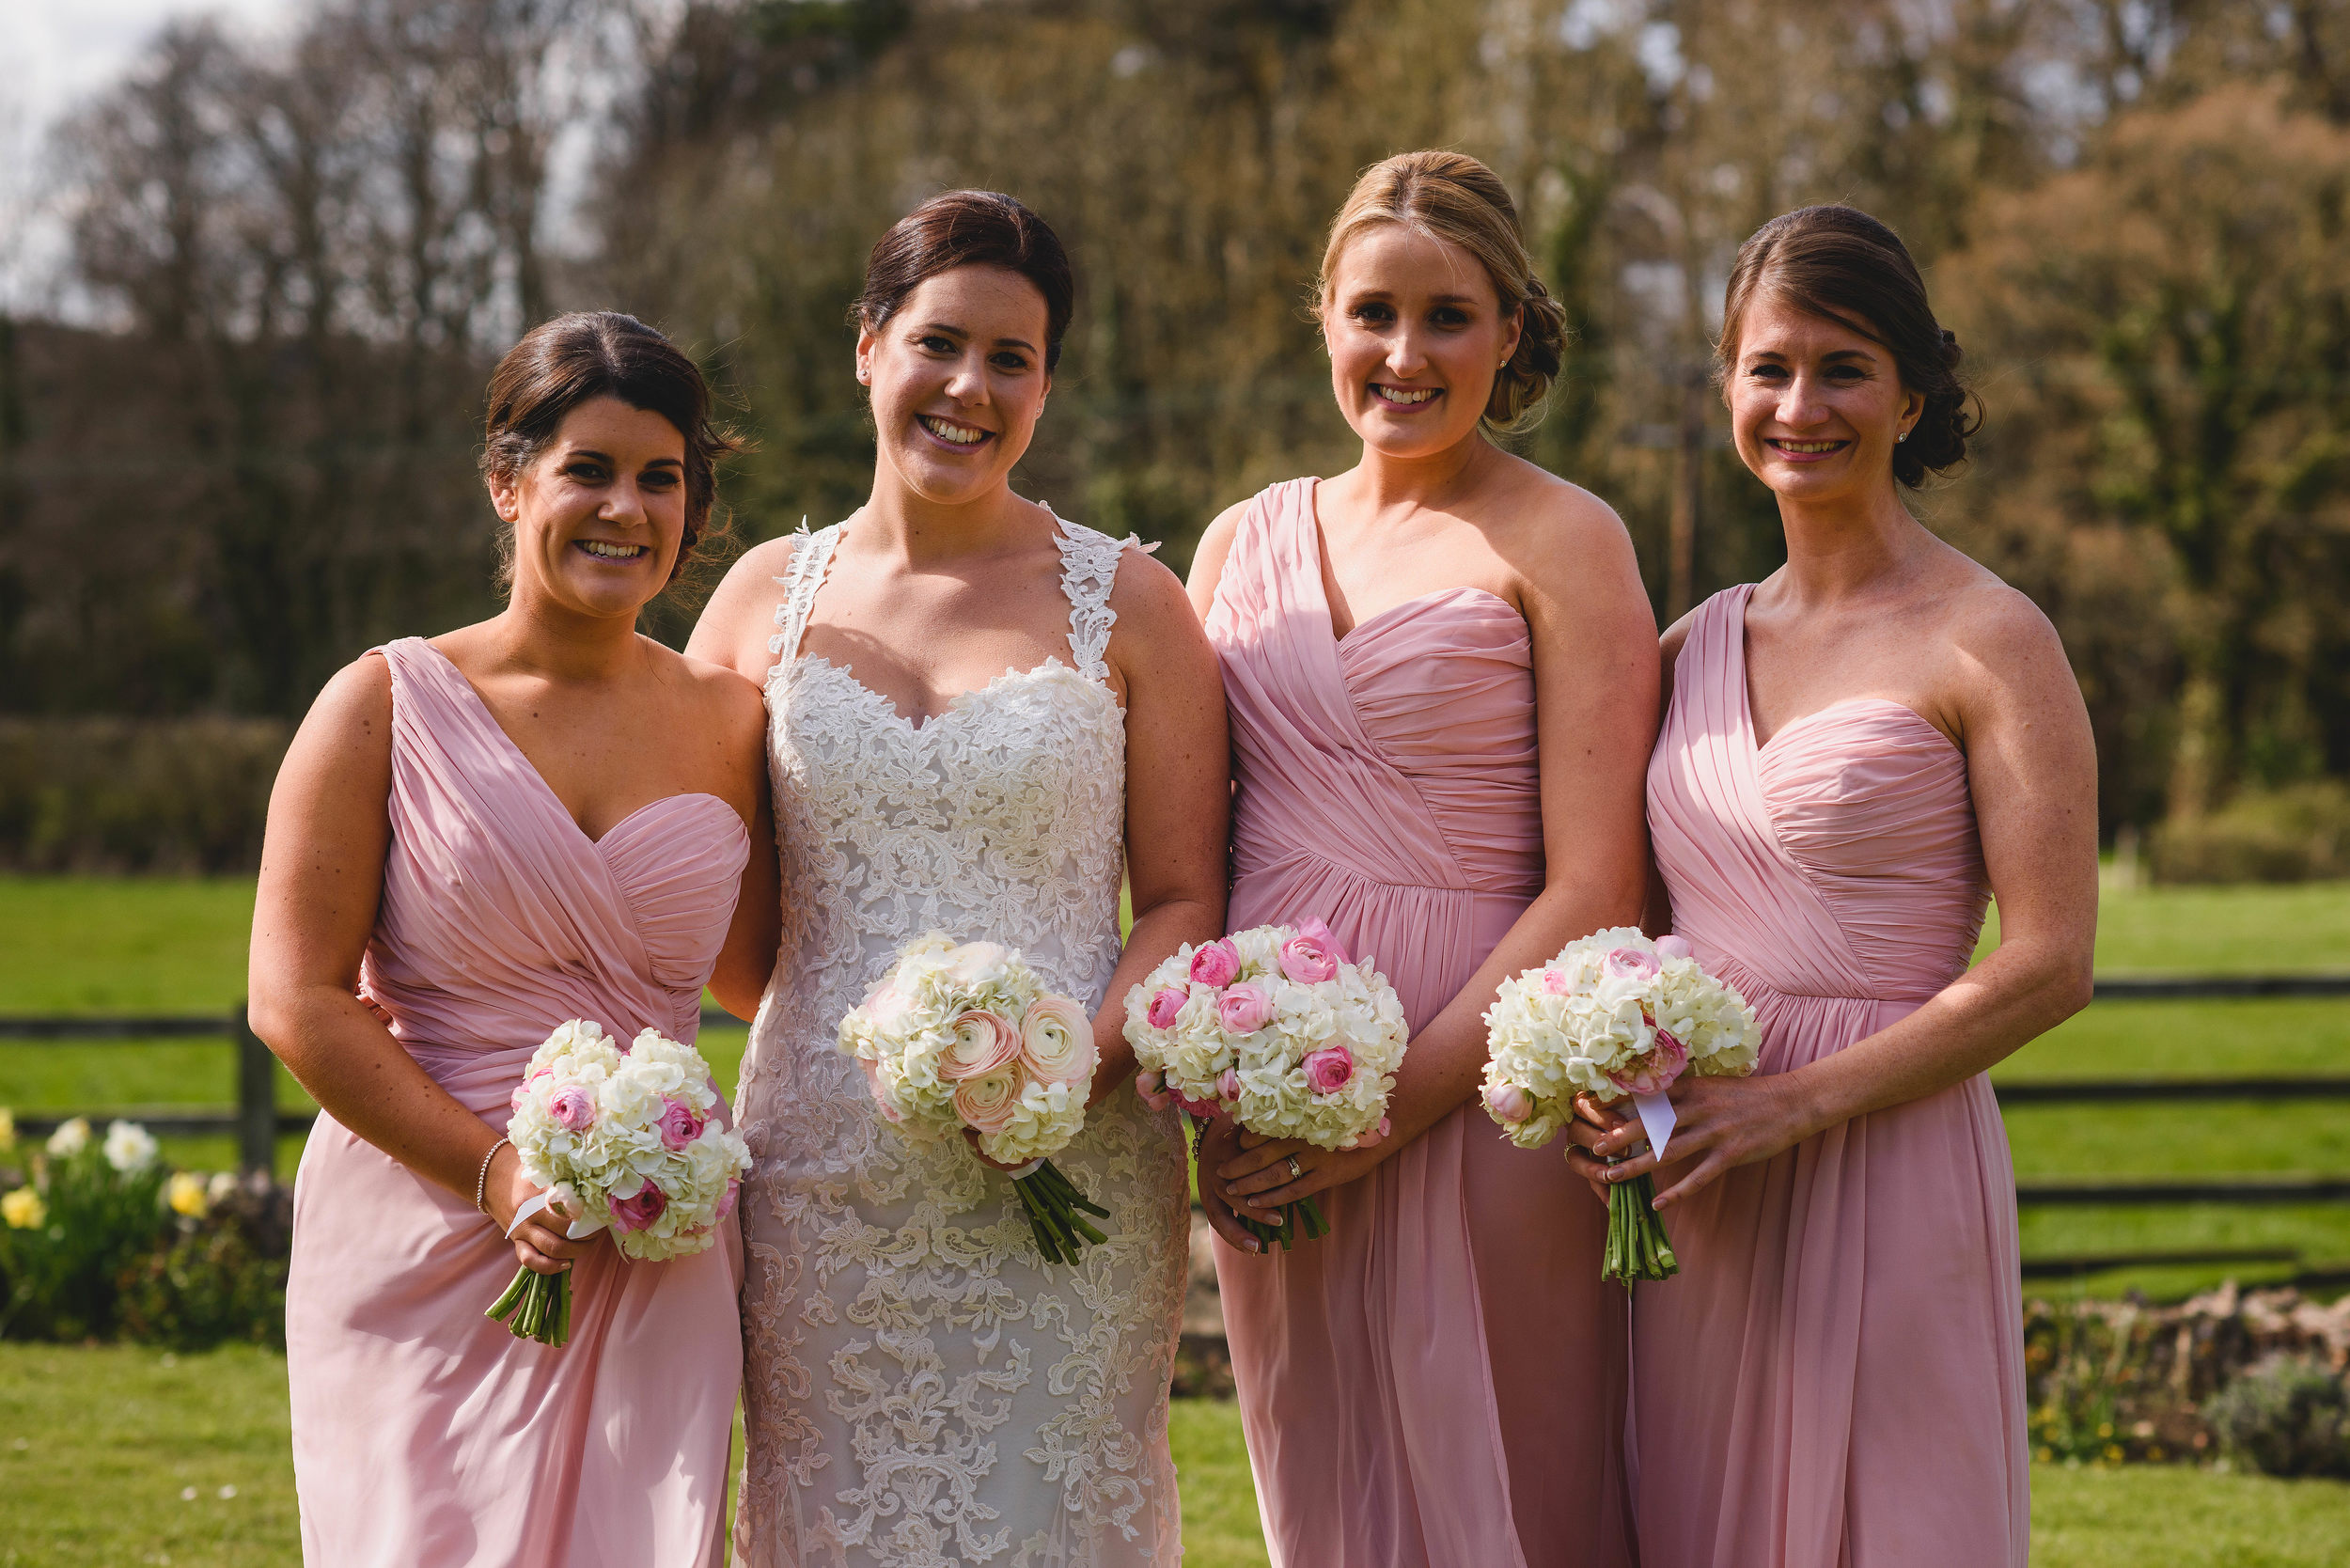 Zoe and her bridesmaids - April 2015